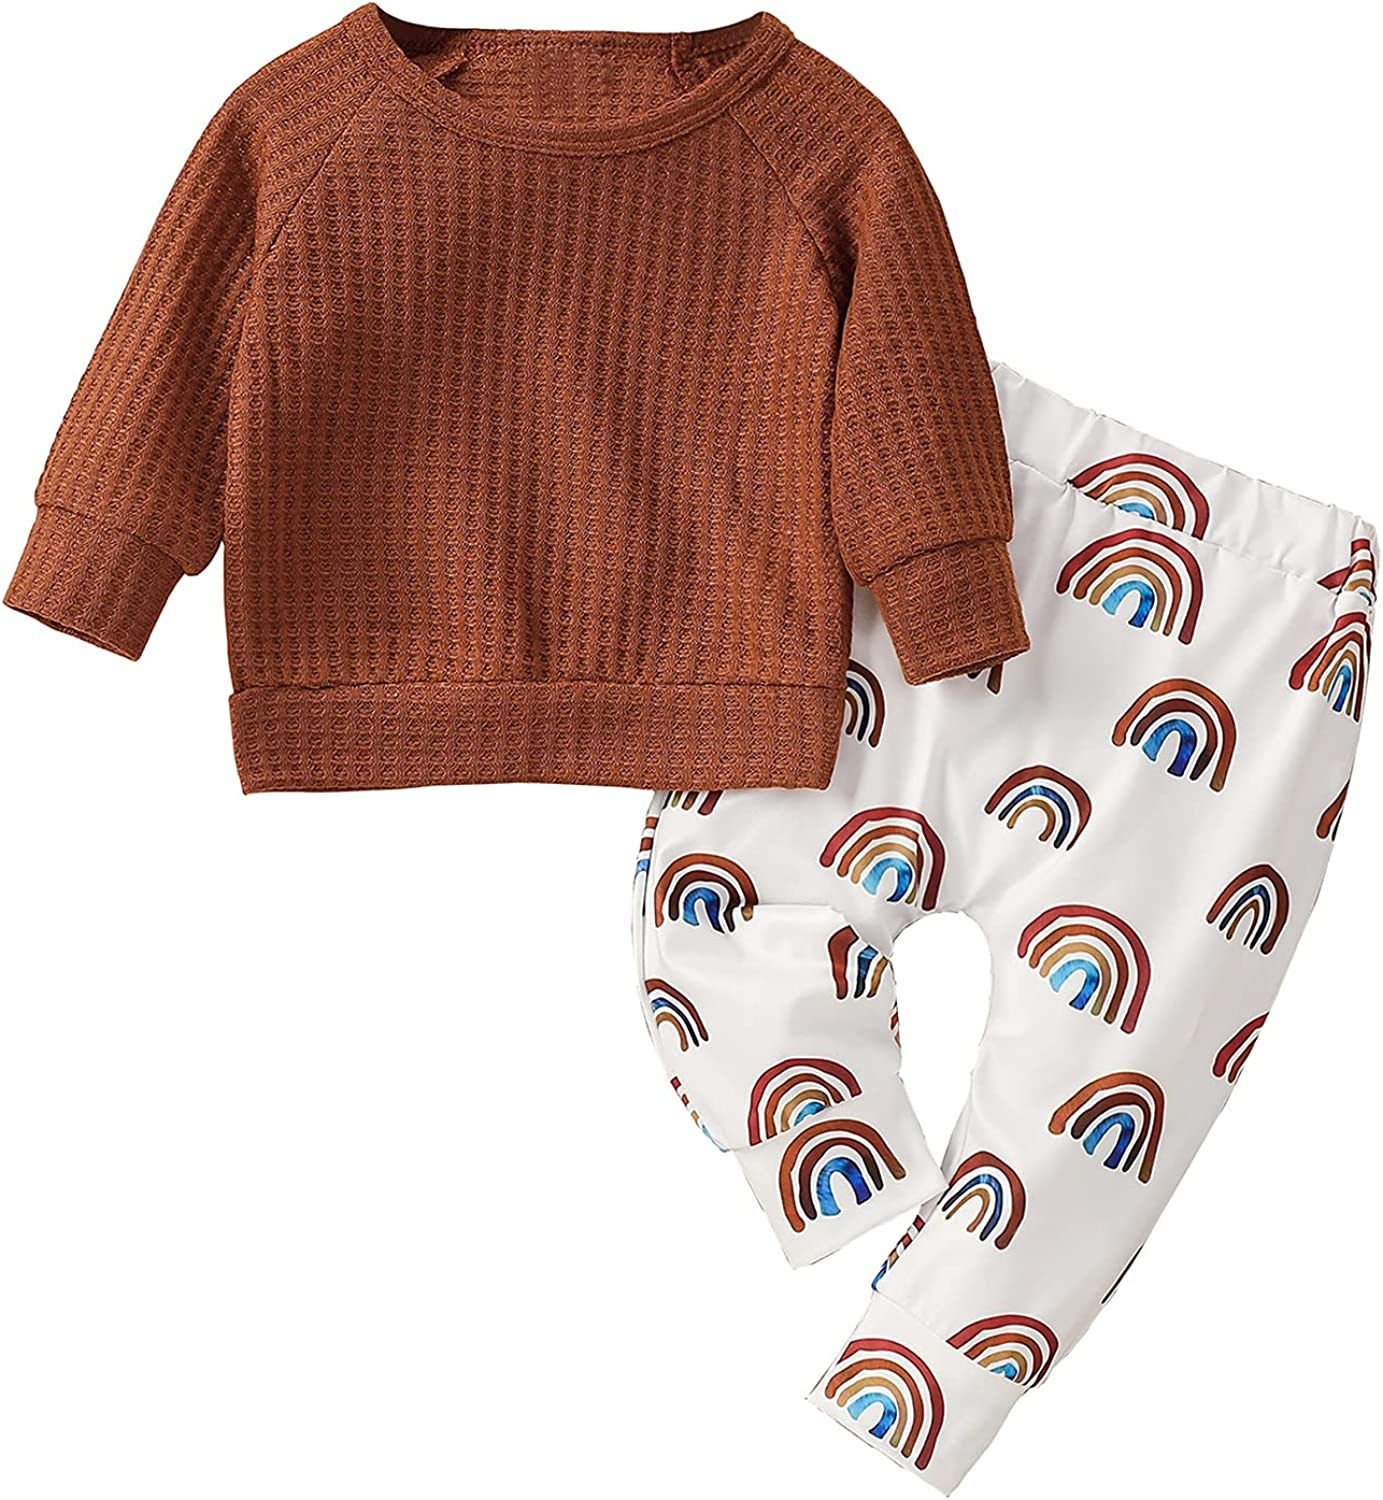 Newborn Baby Girls Fall Casual Clothes Sets Solid Knit Ribbed Tops+Rainbow Print Trousers Clothing Outfits